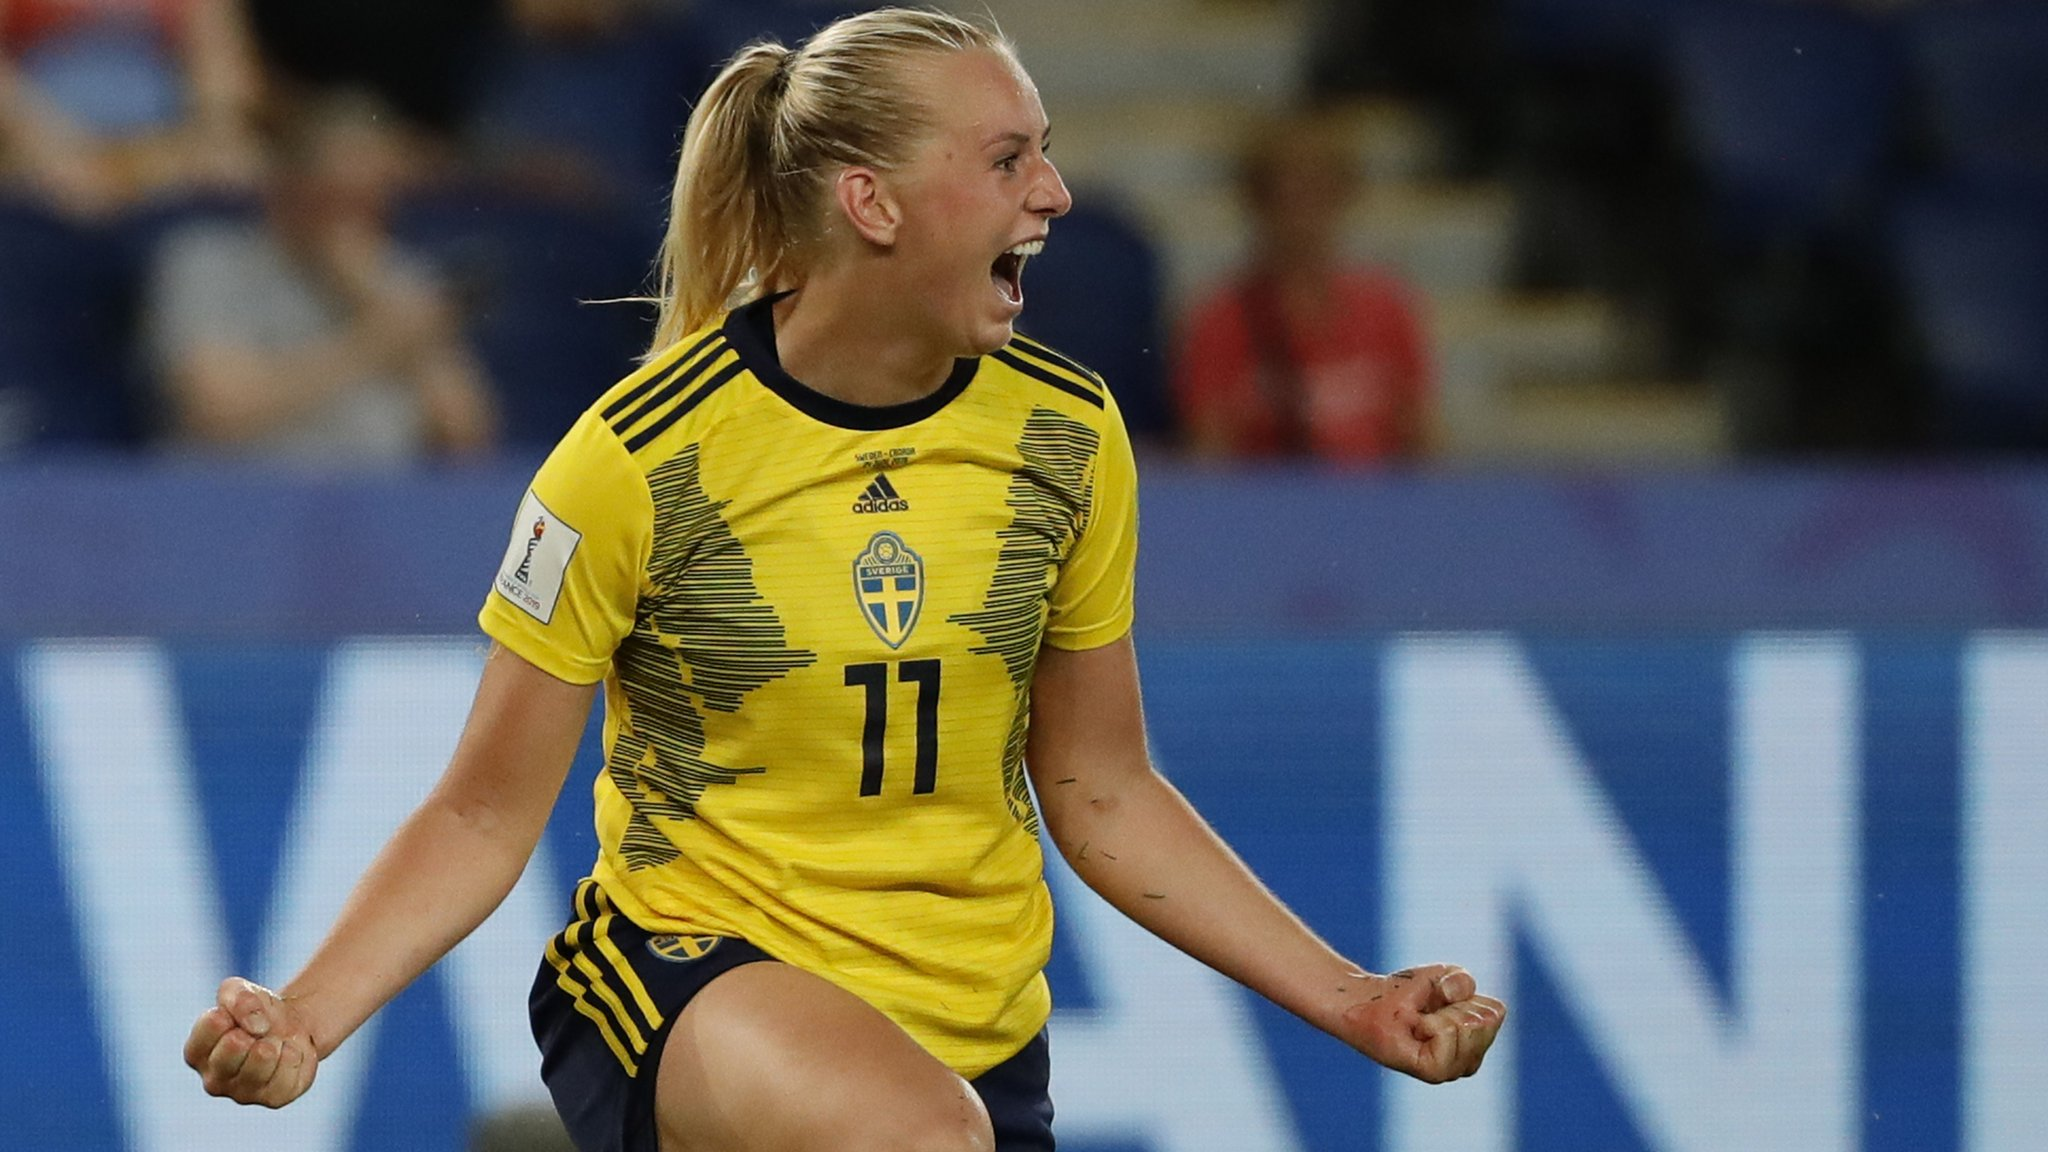 Women's World Cup 2019: Sweden beat Canada to set up Germany quarter-final